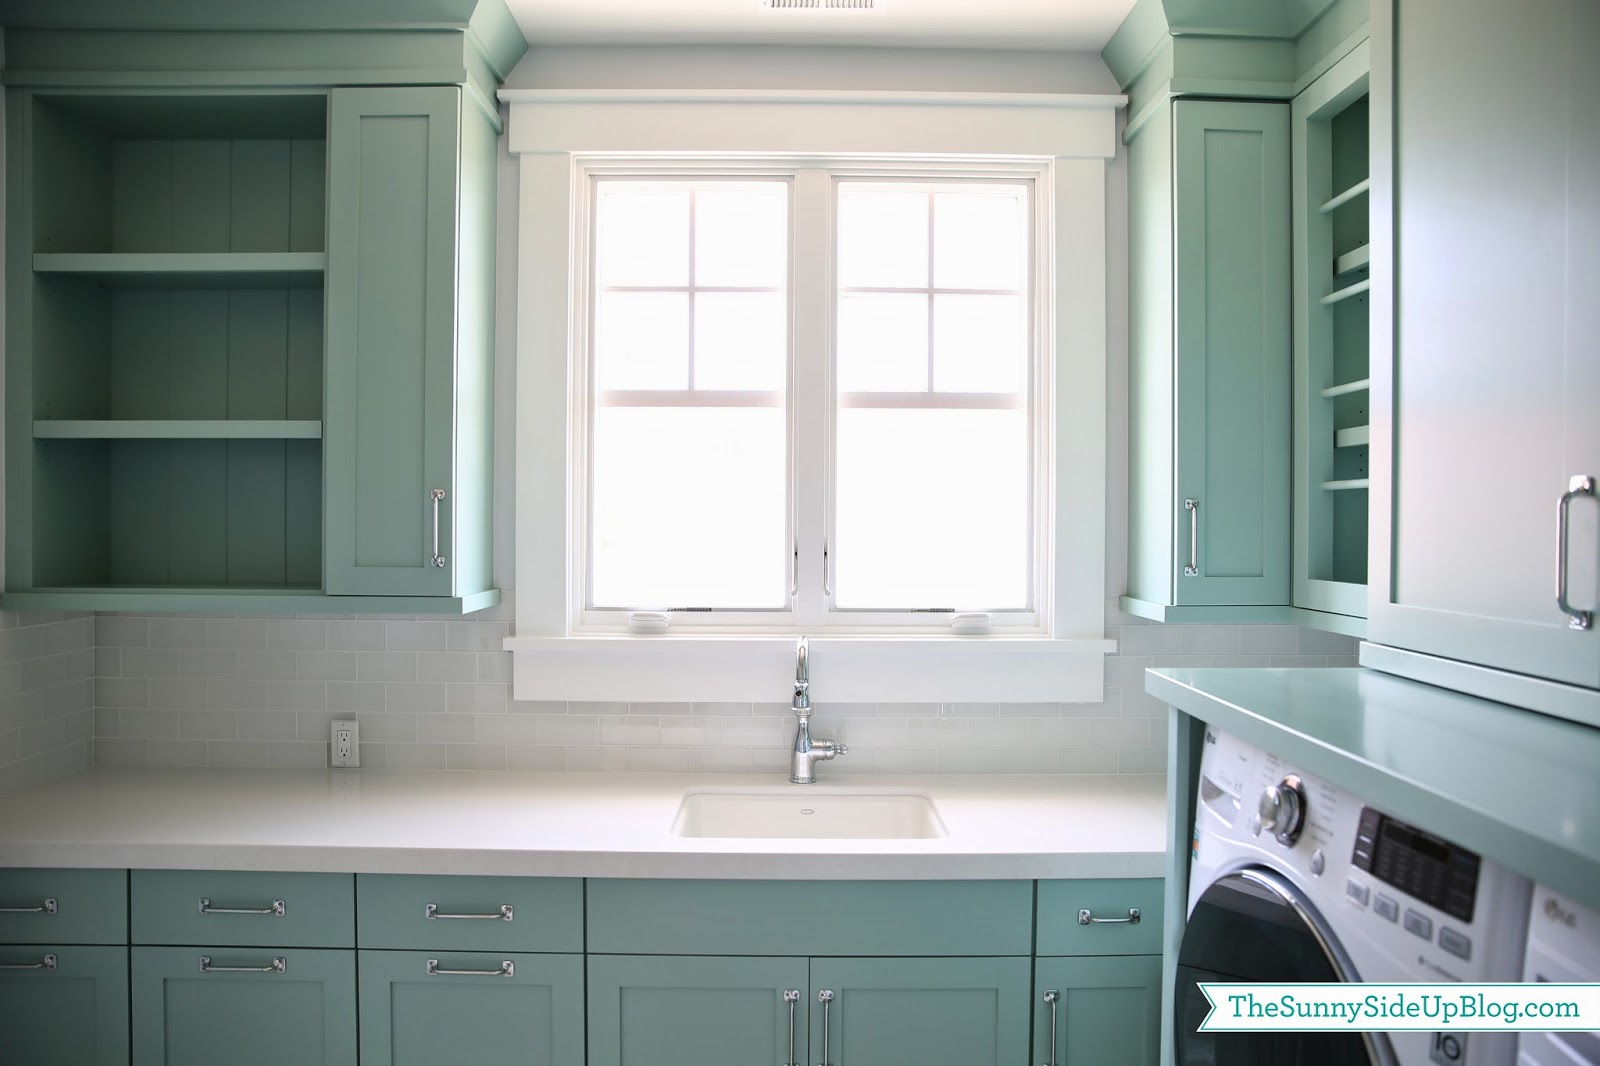 Cheap kitchen cabinets in grand rapids mi - Cheap Kitchen Cabinets Grand Rapids Mi Picture Ideas With Used Kitchen